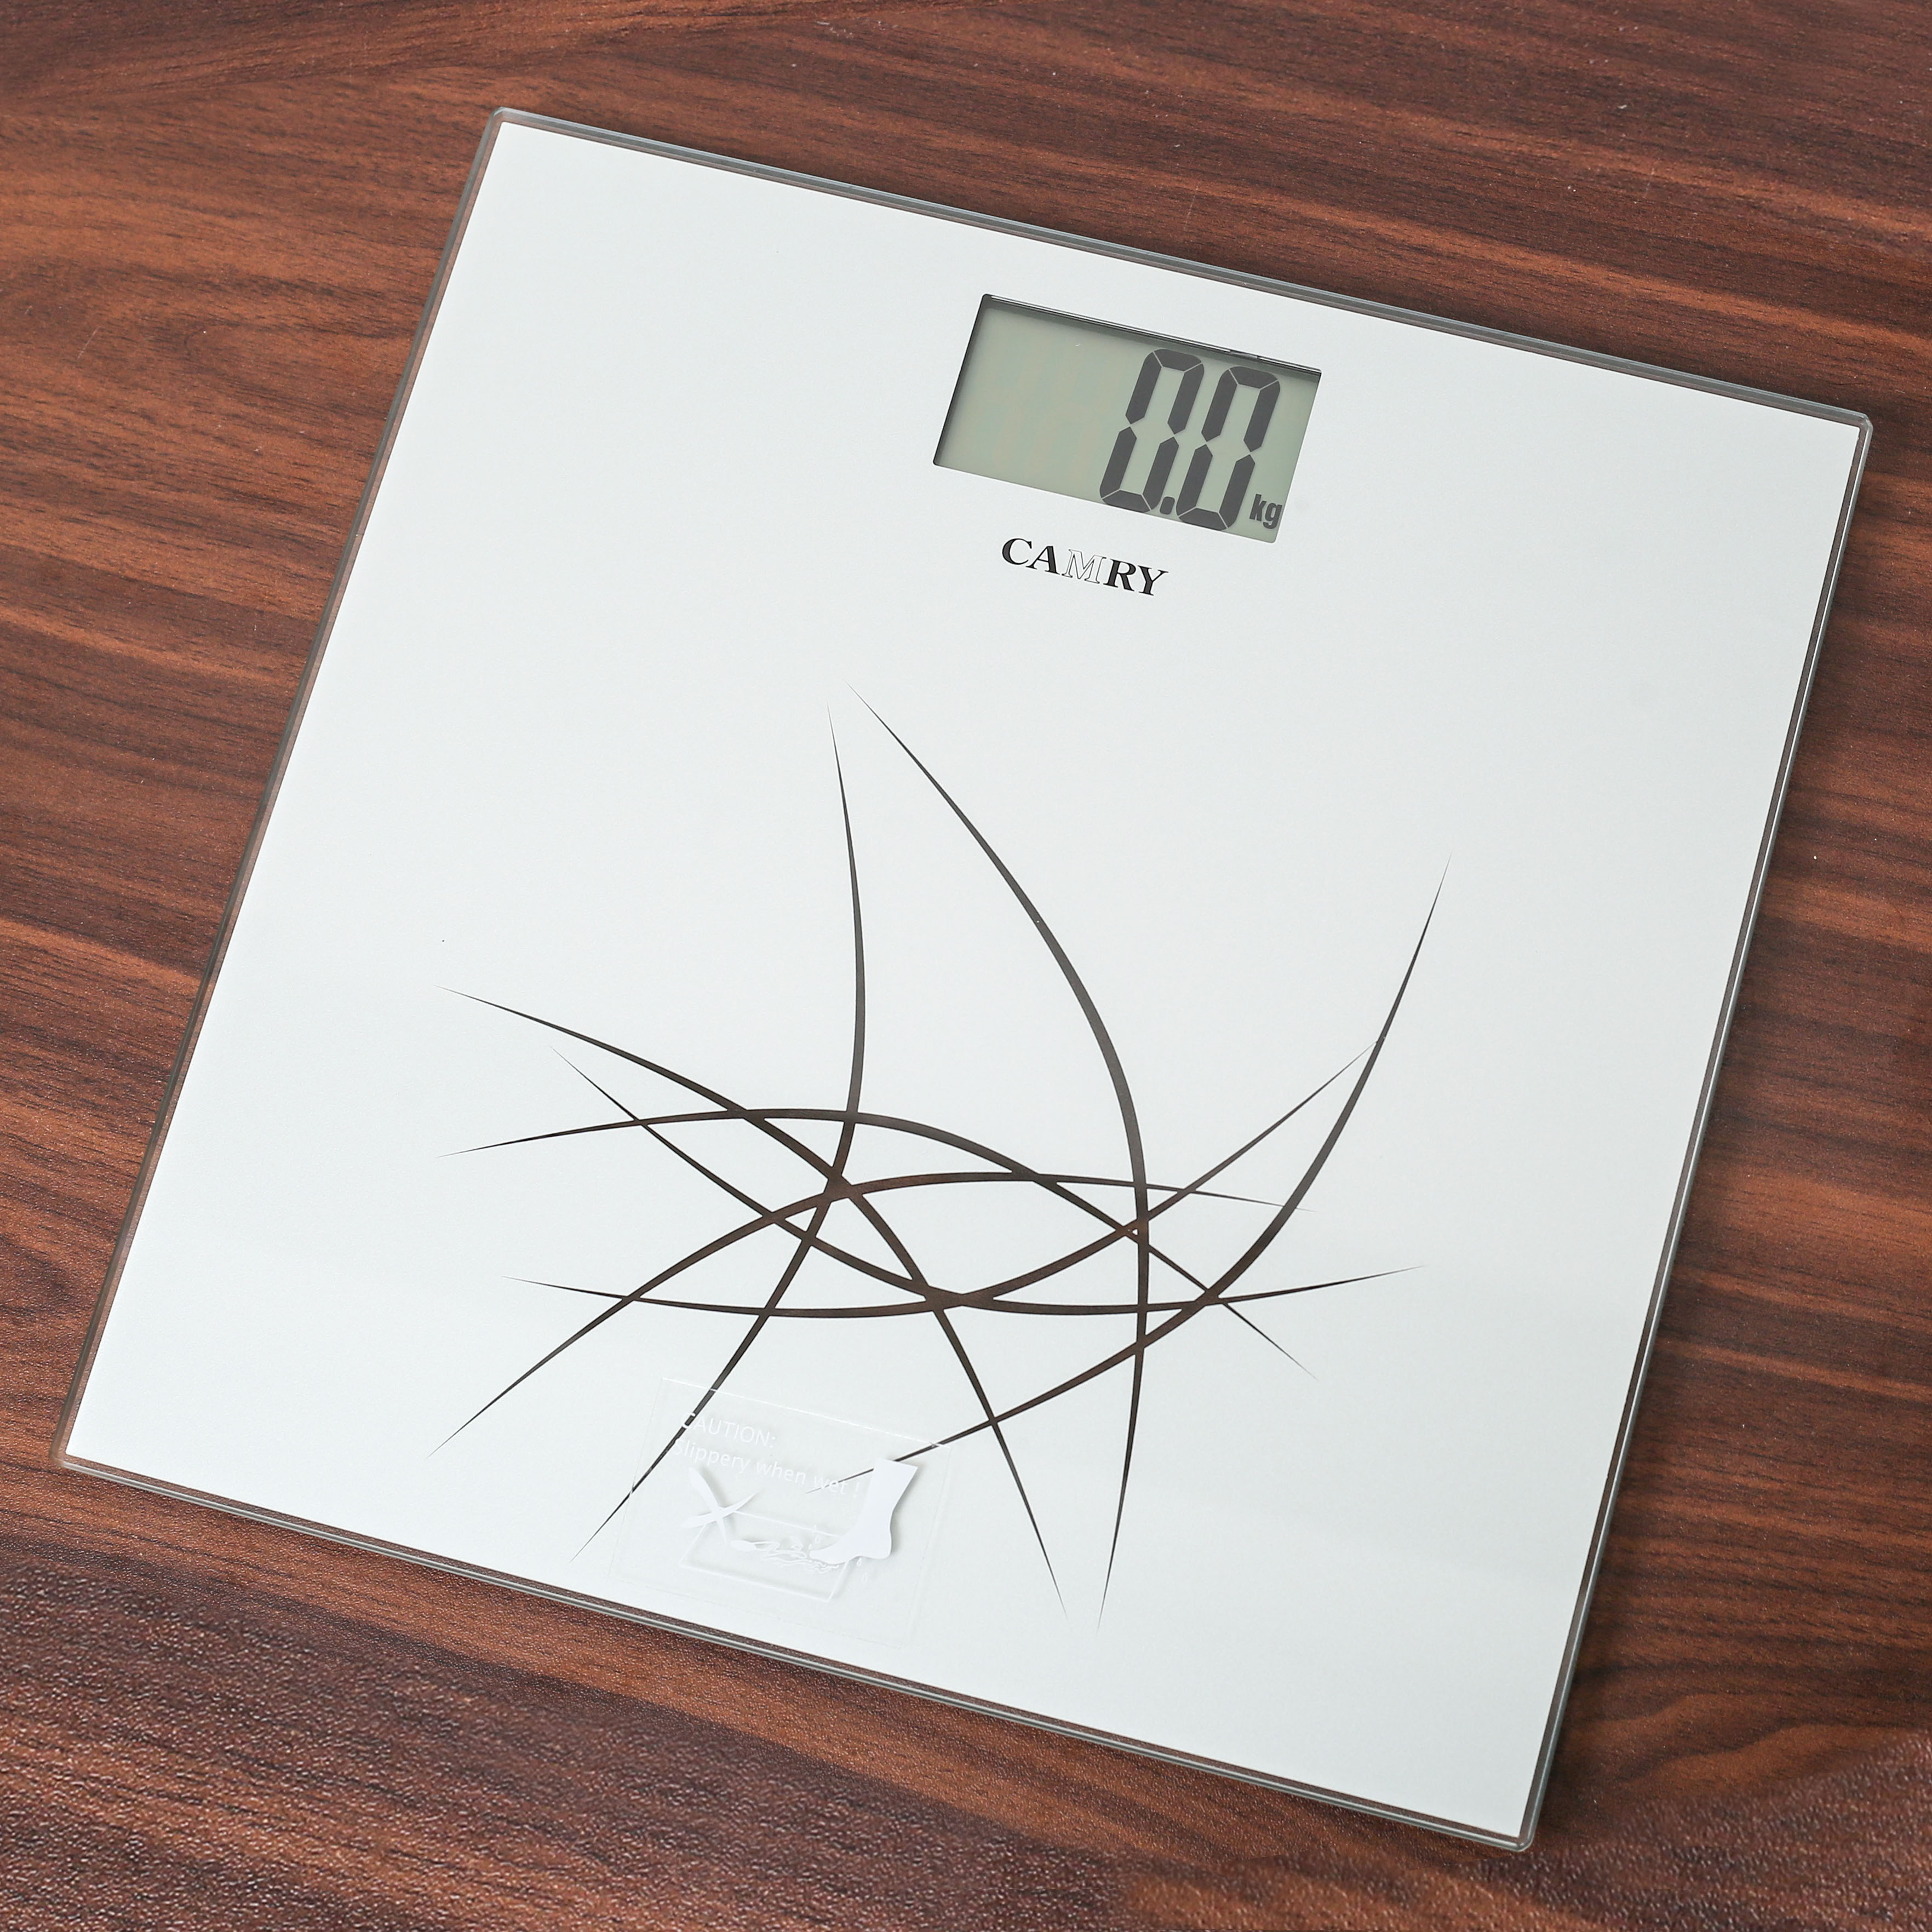 Camry Digital Body Weight Glass Scale - Weight Machine - Bathroom scale Black Colour